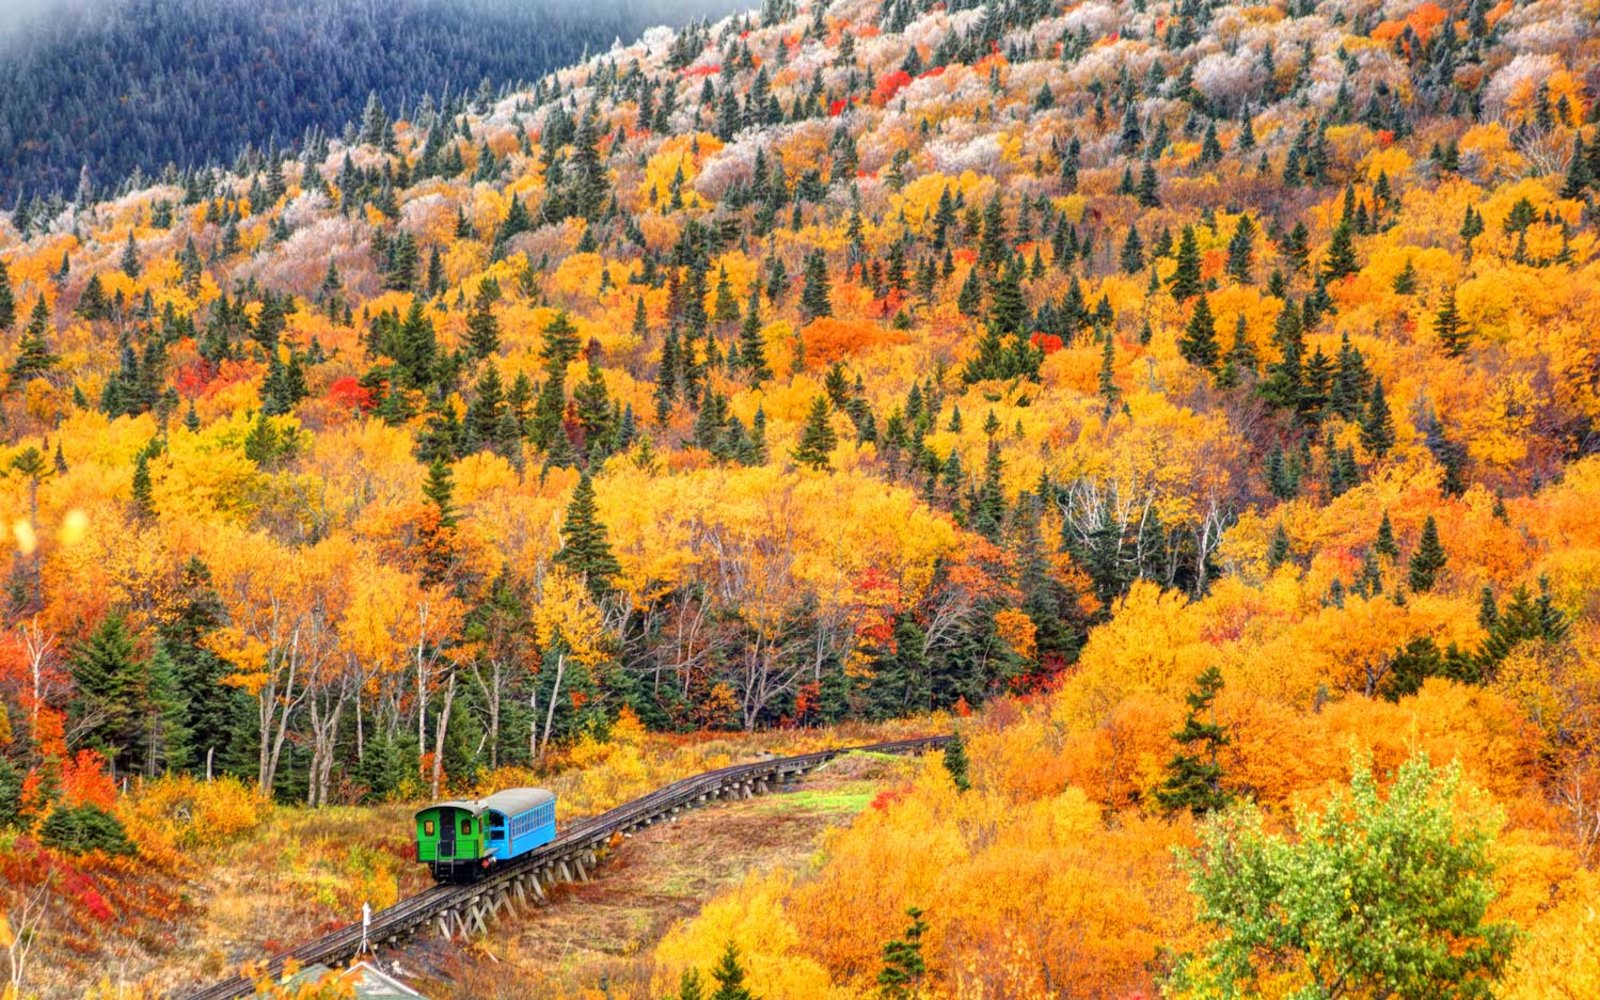 The Best Fall Foliage Train Trips to Take This Year